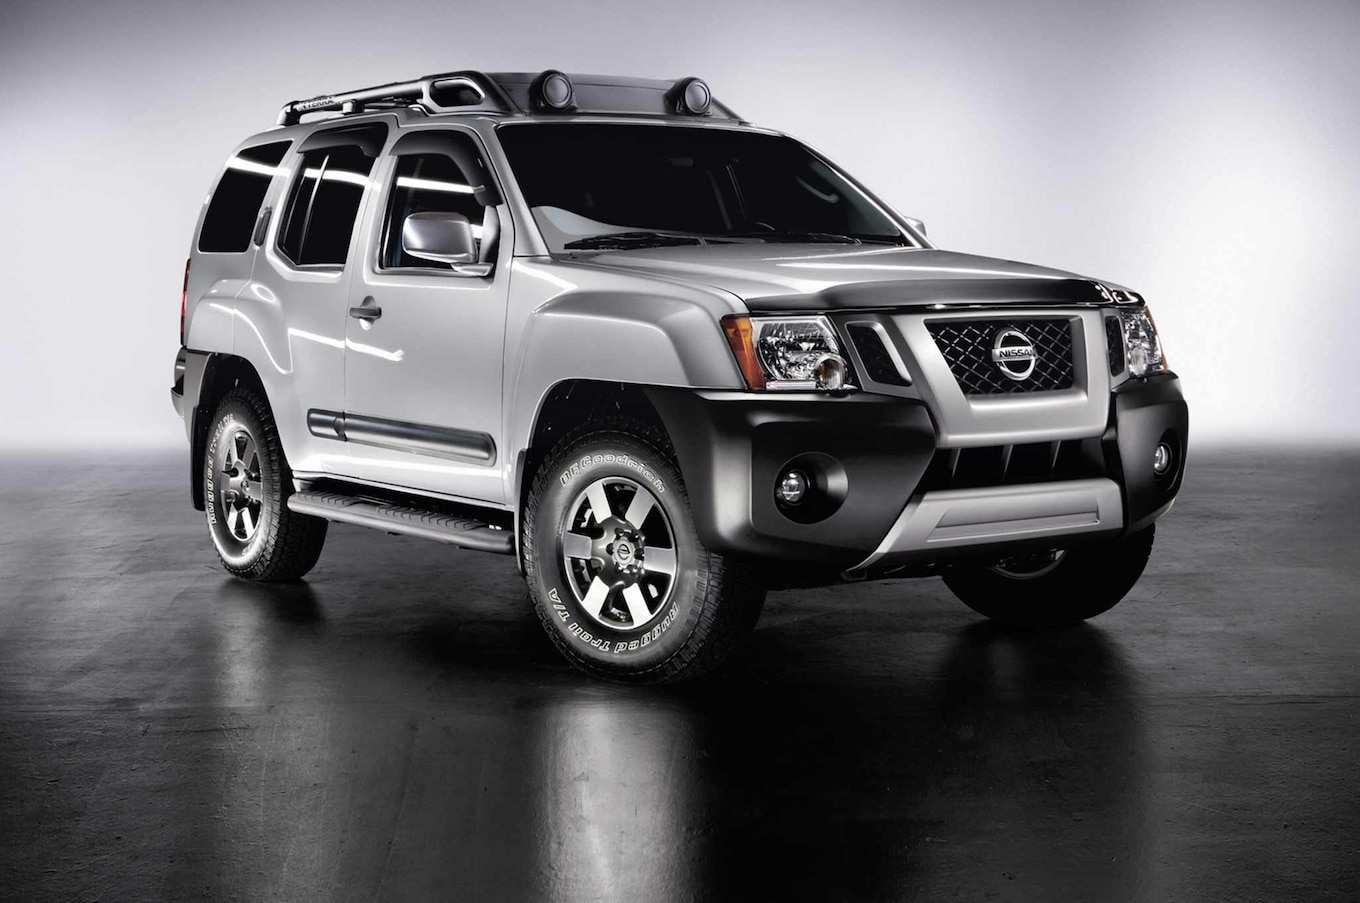 49 Great Nissan Frontier 2020 Usa Price by Nissan Frontier 2020 Usa